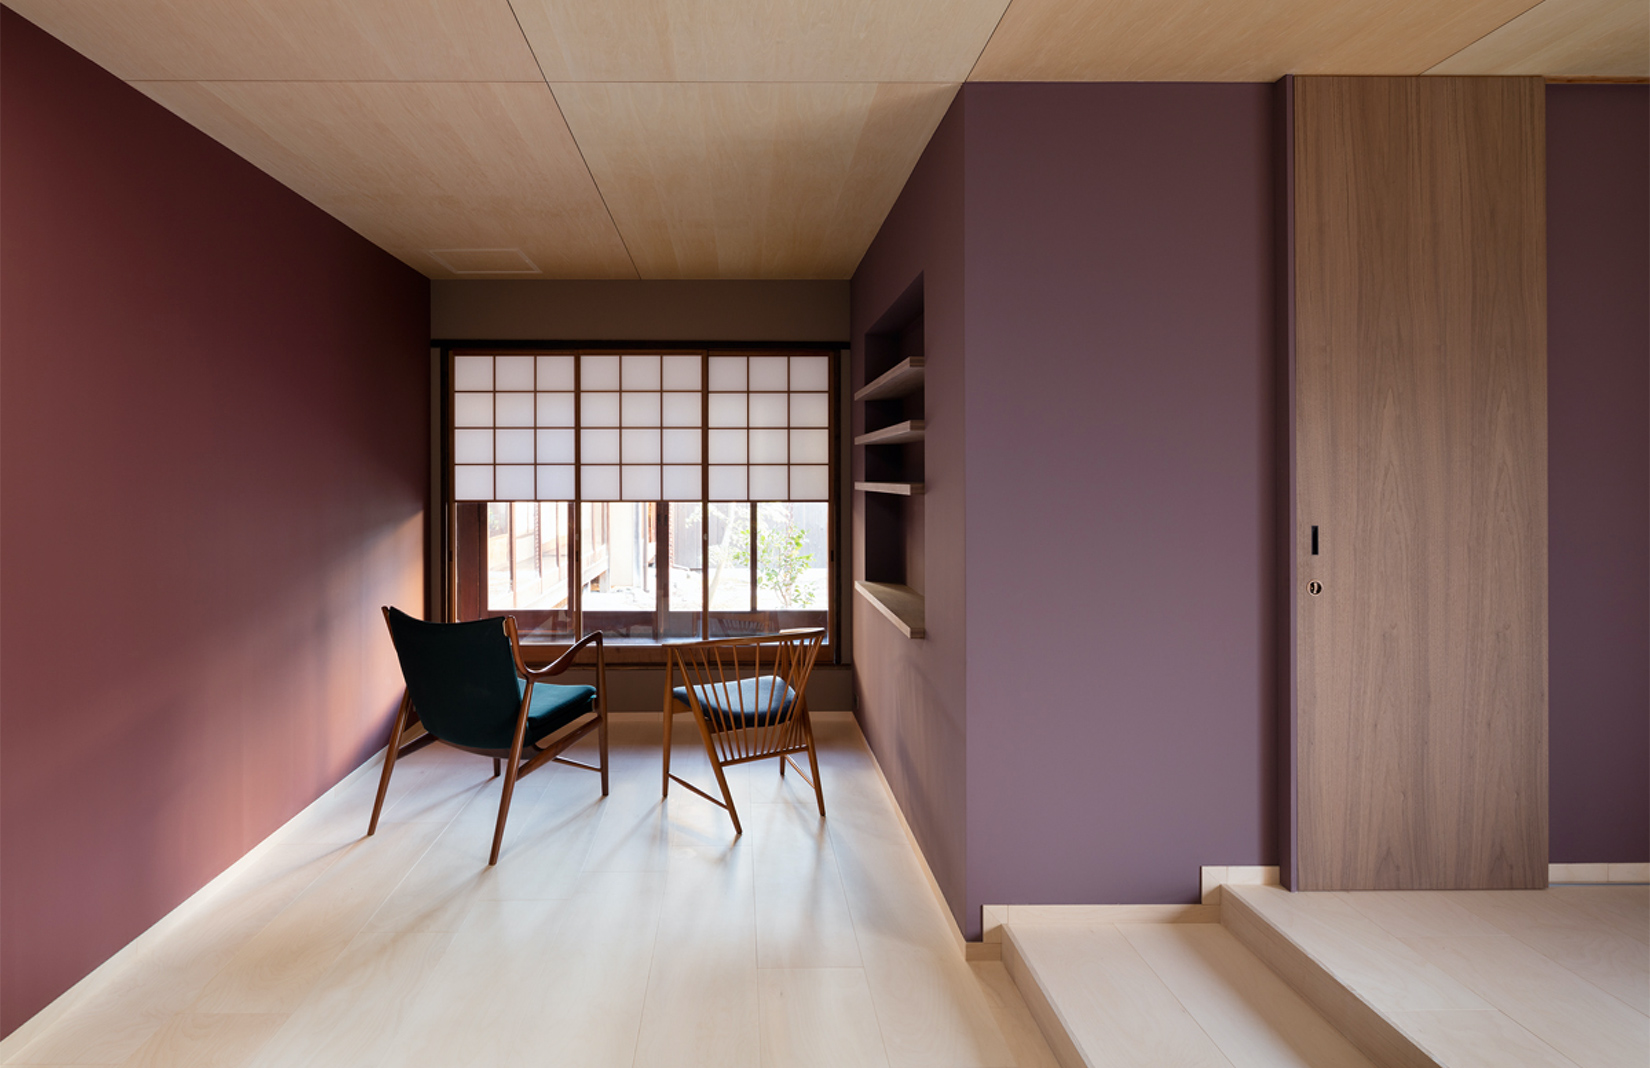 Nichinichi townhouse in Kyoto